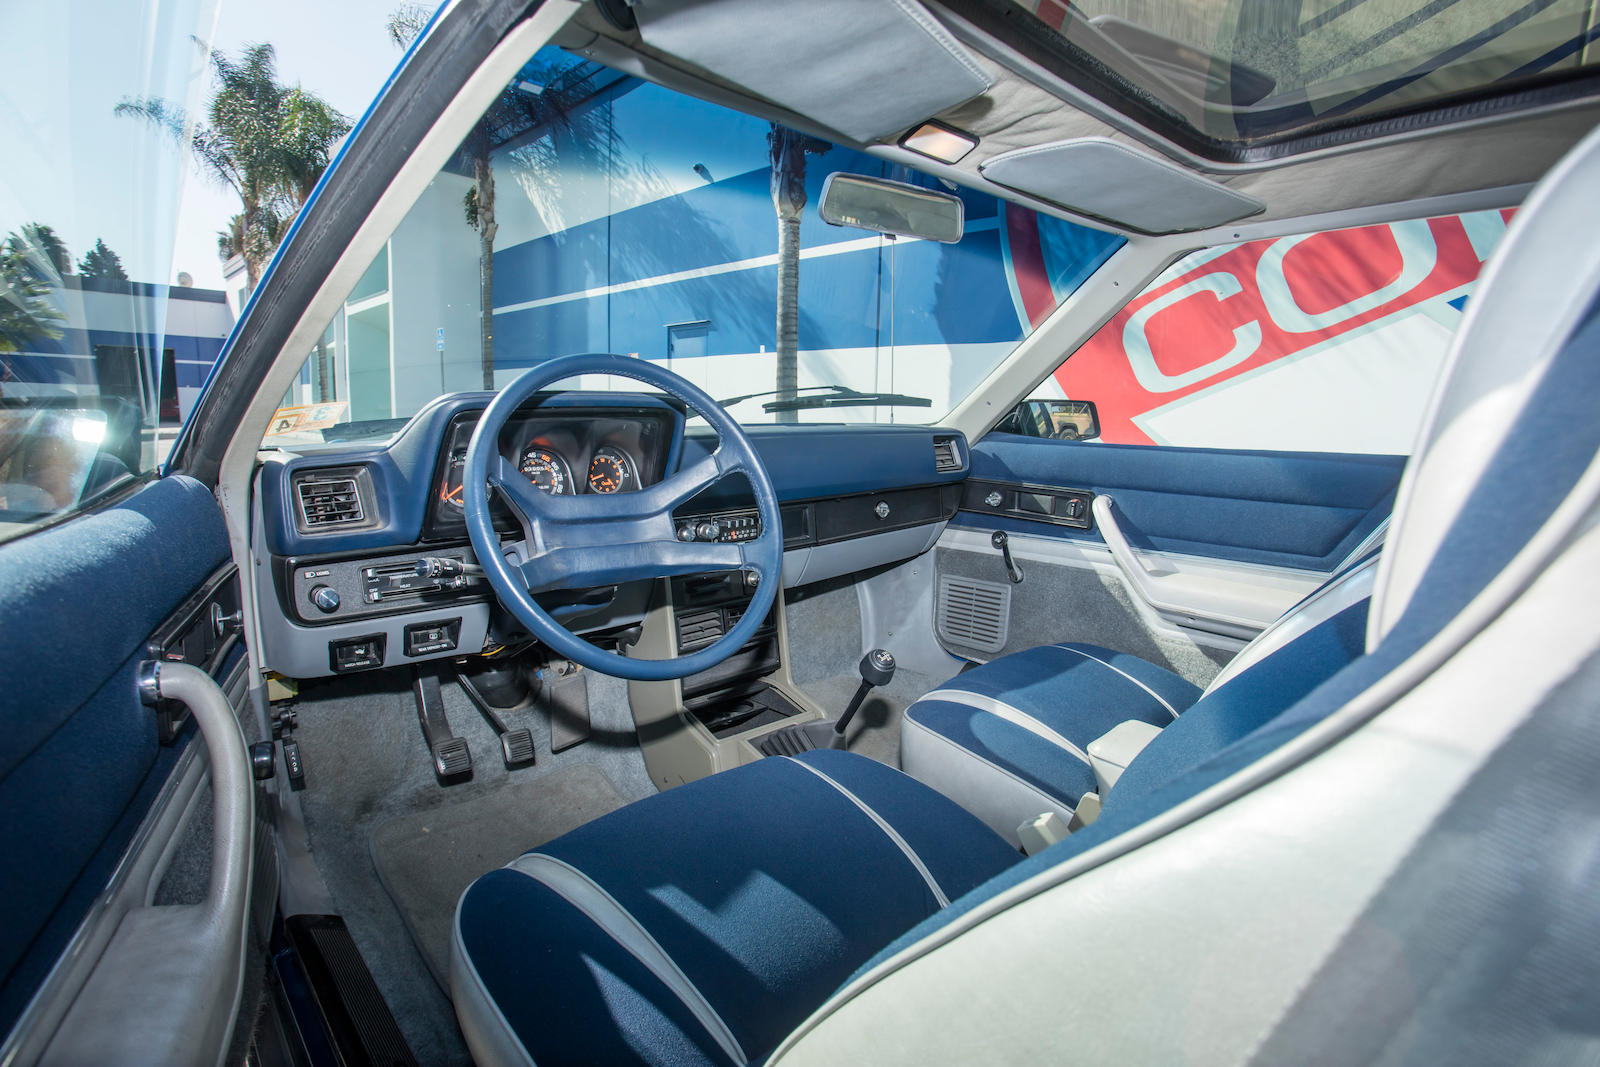 1983 Dodge Shelby Charger interior